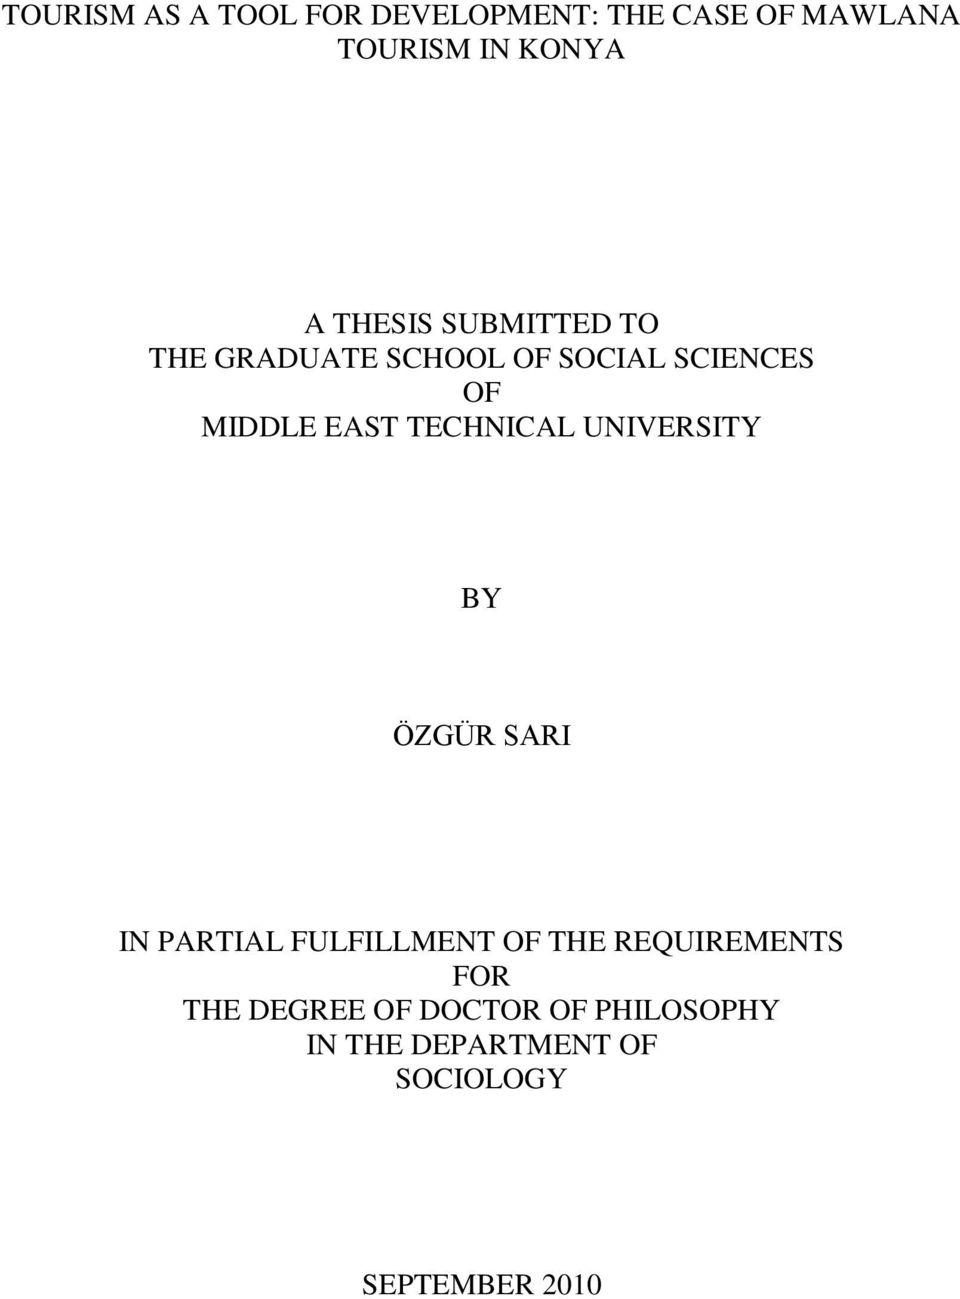 TECHNICAL UNIVERSITY BY ÖZGÜR SARI IN PARTIAL FULFILLMENT OF THE REQUIREMENTS